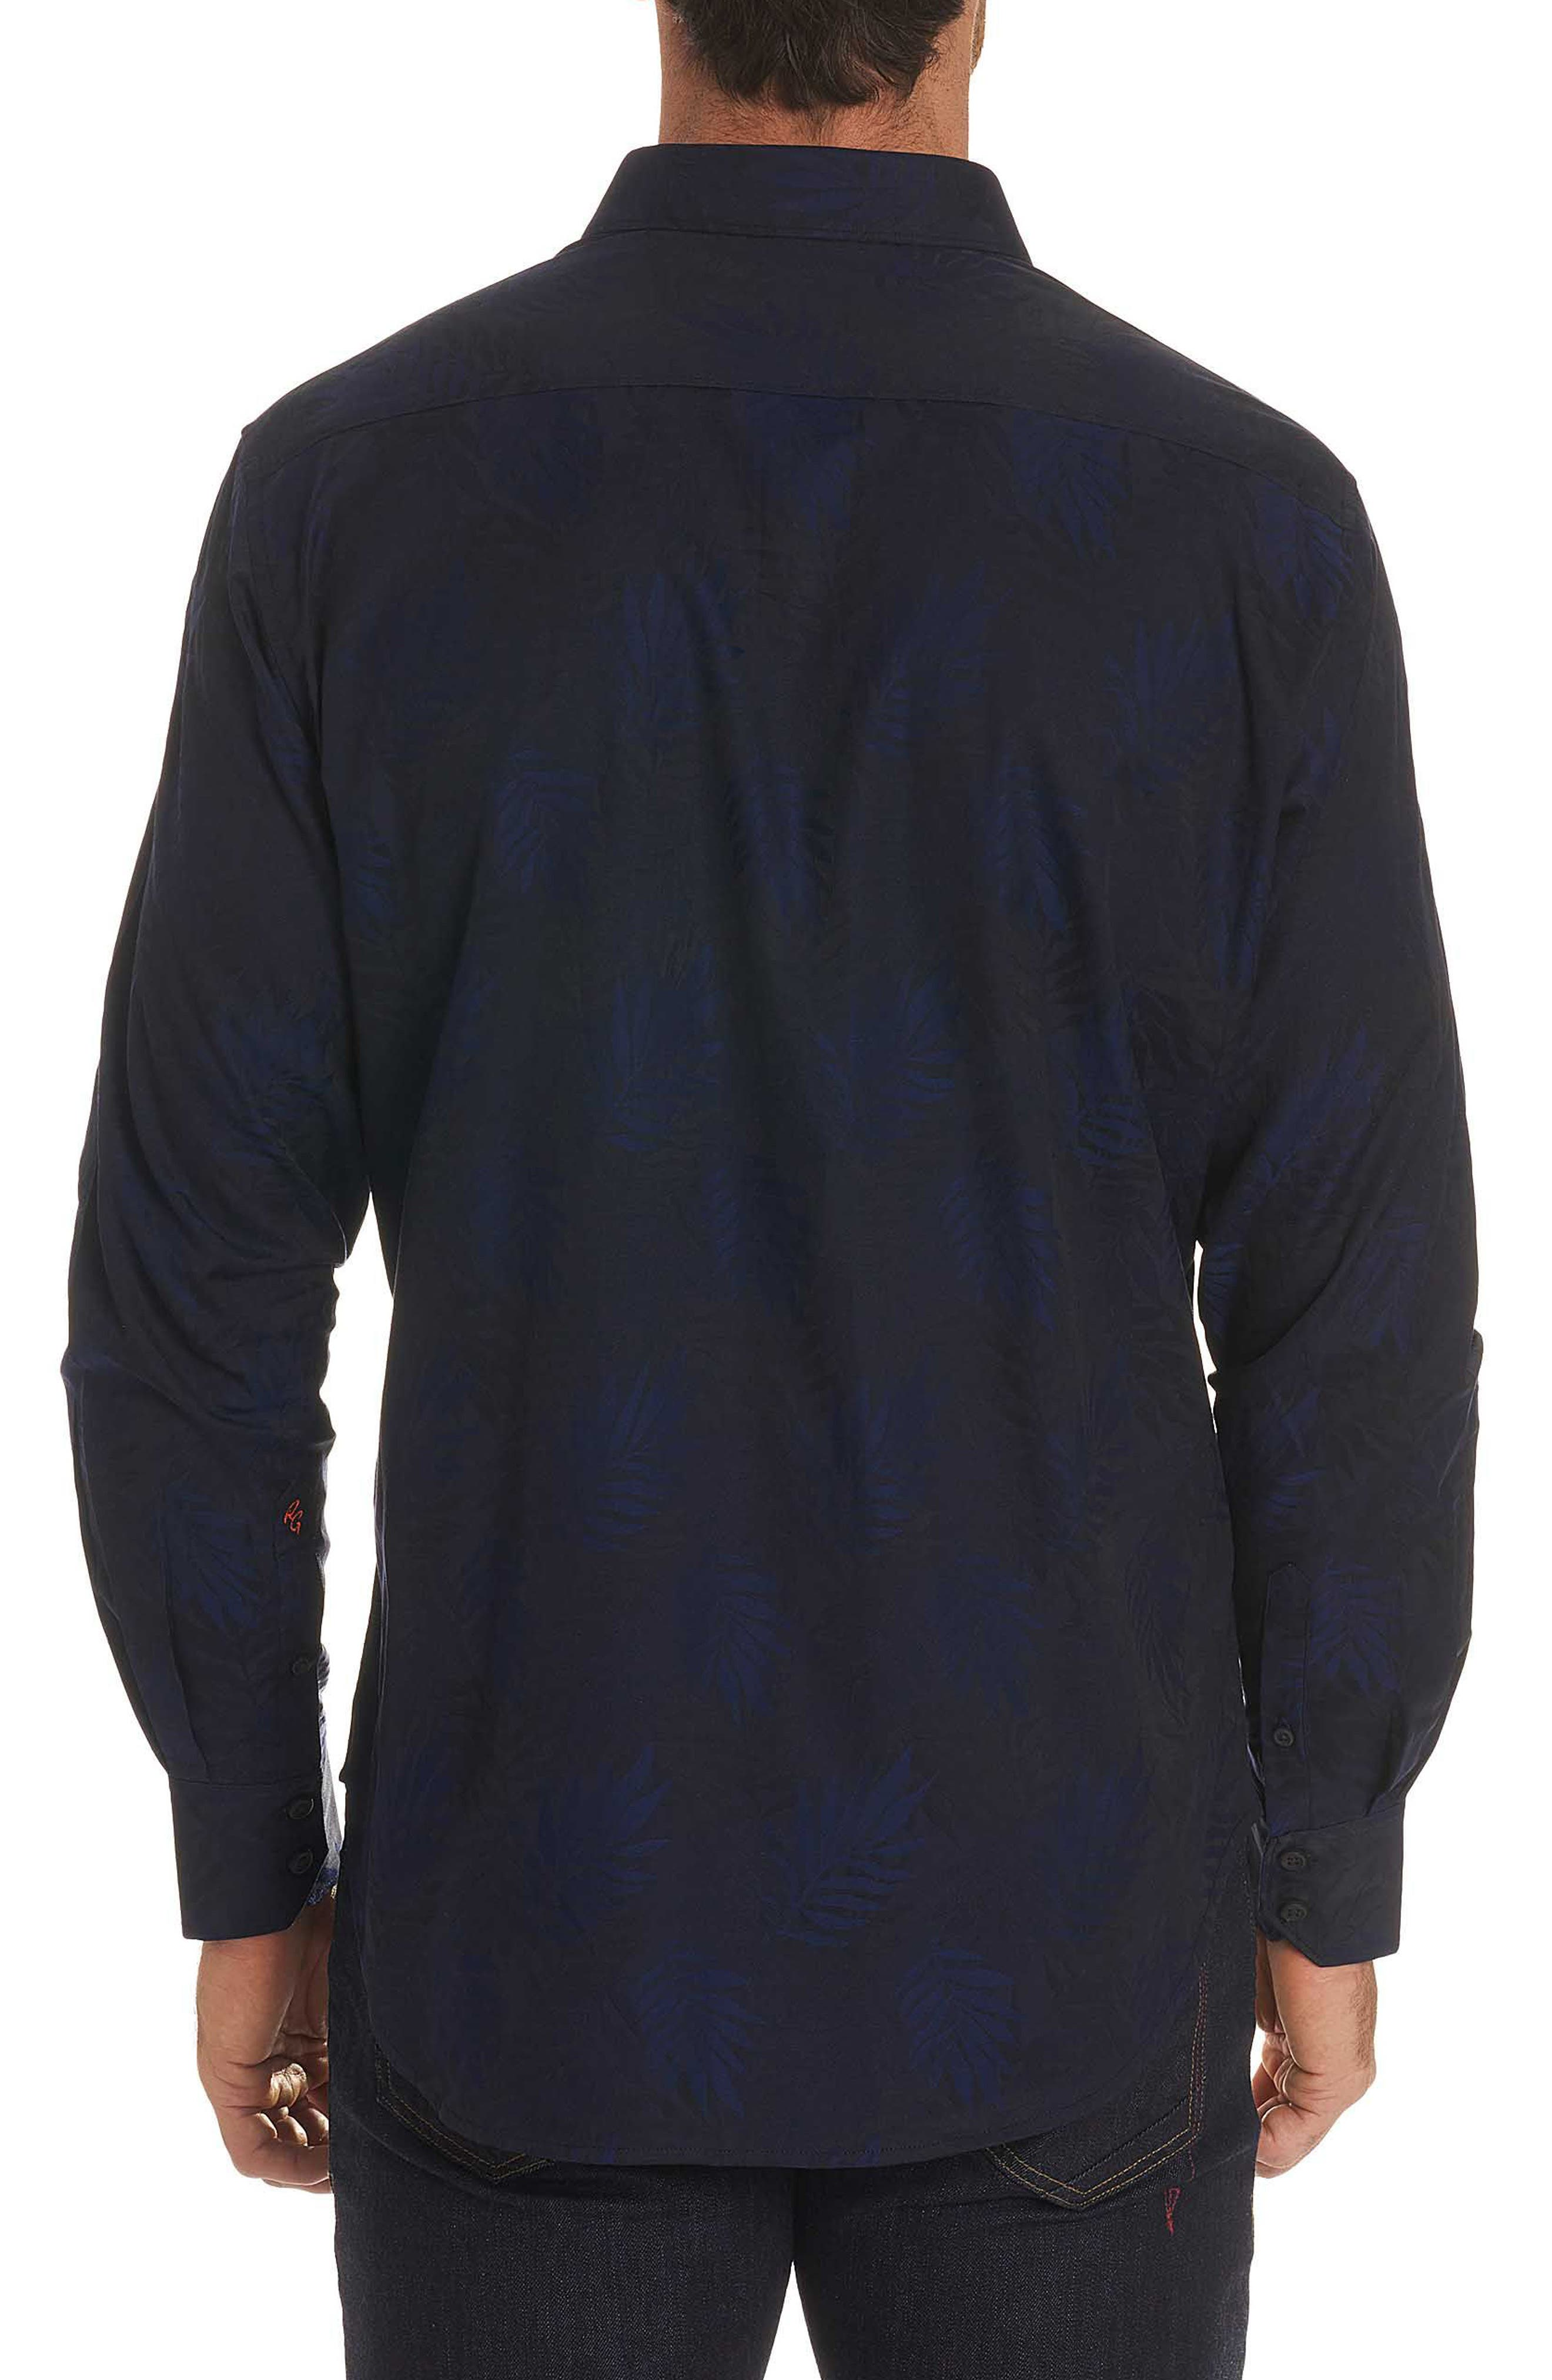 Monte Classic Fit Sport Shirt,                             Alternate thumbnail 2, color,                             Midnight Navy